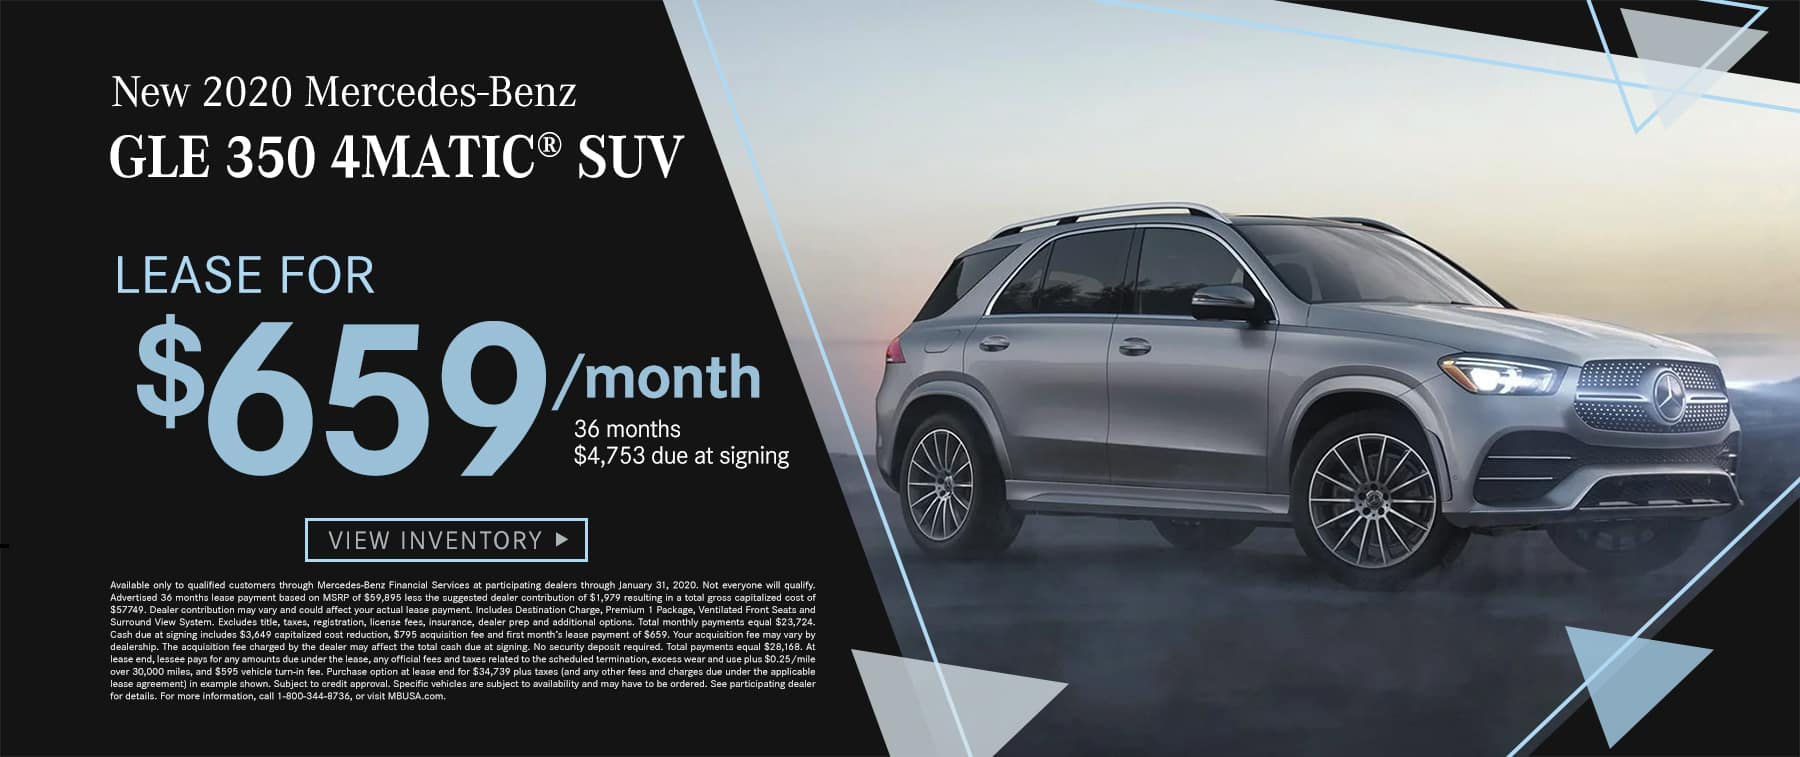 2020 GLE 350 4MATIC® SUV $659 Per Month 36 Months/10k Miles $4753 Due at signing